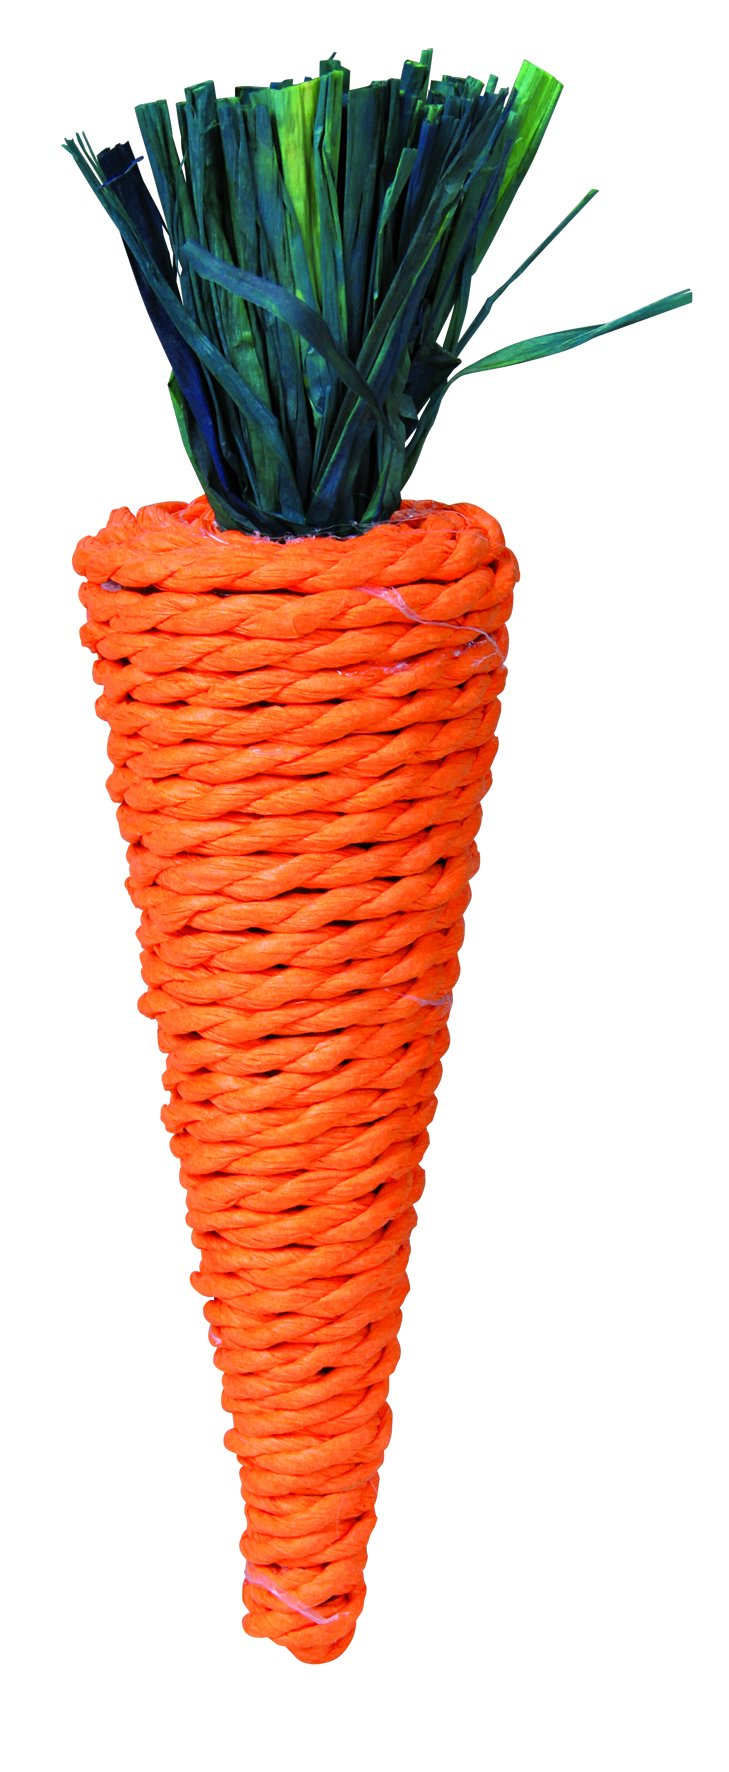 6189 Toy, carrot, for small animals, 20 cm